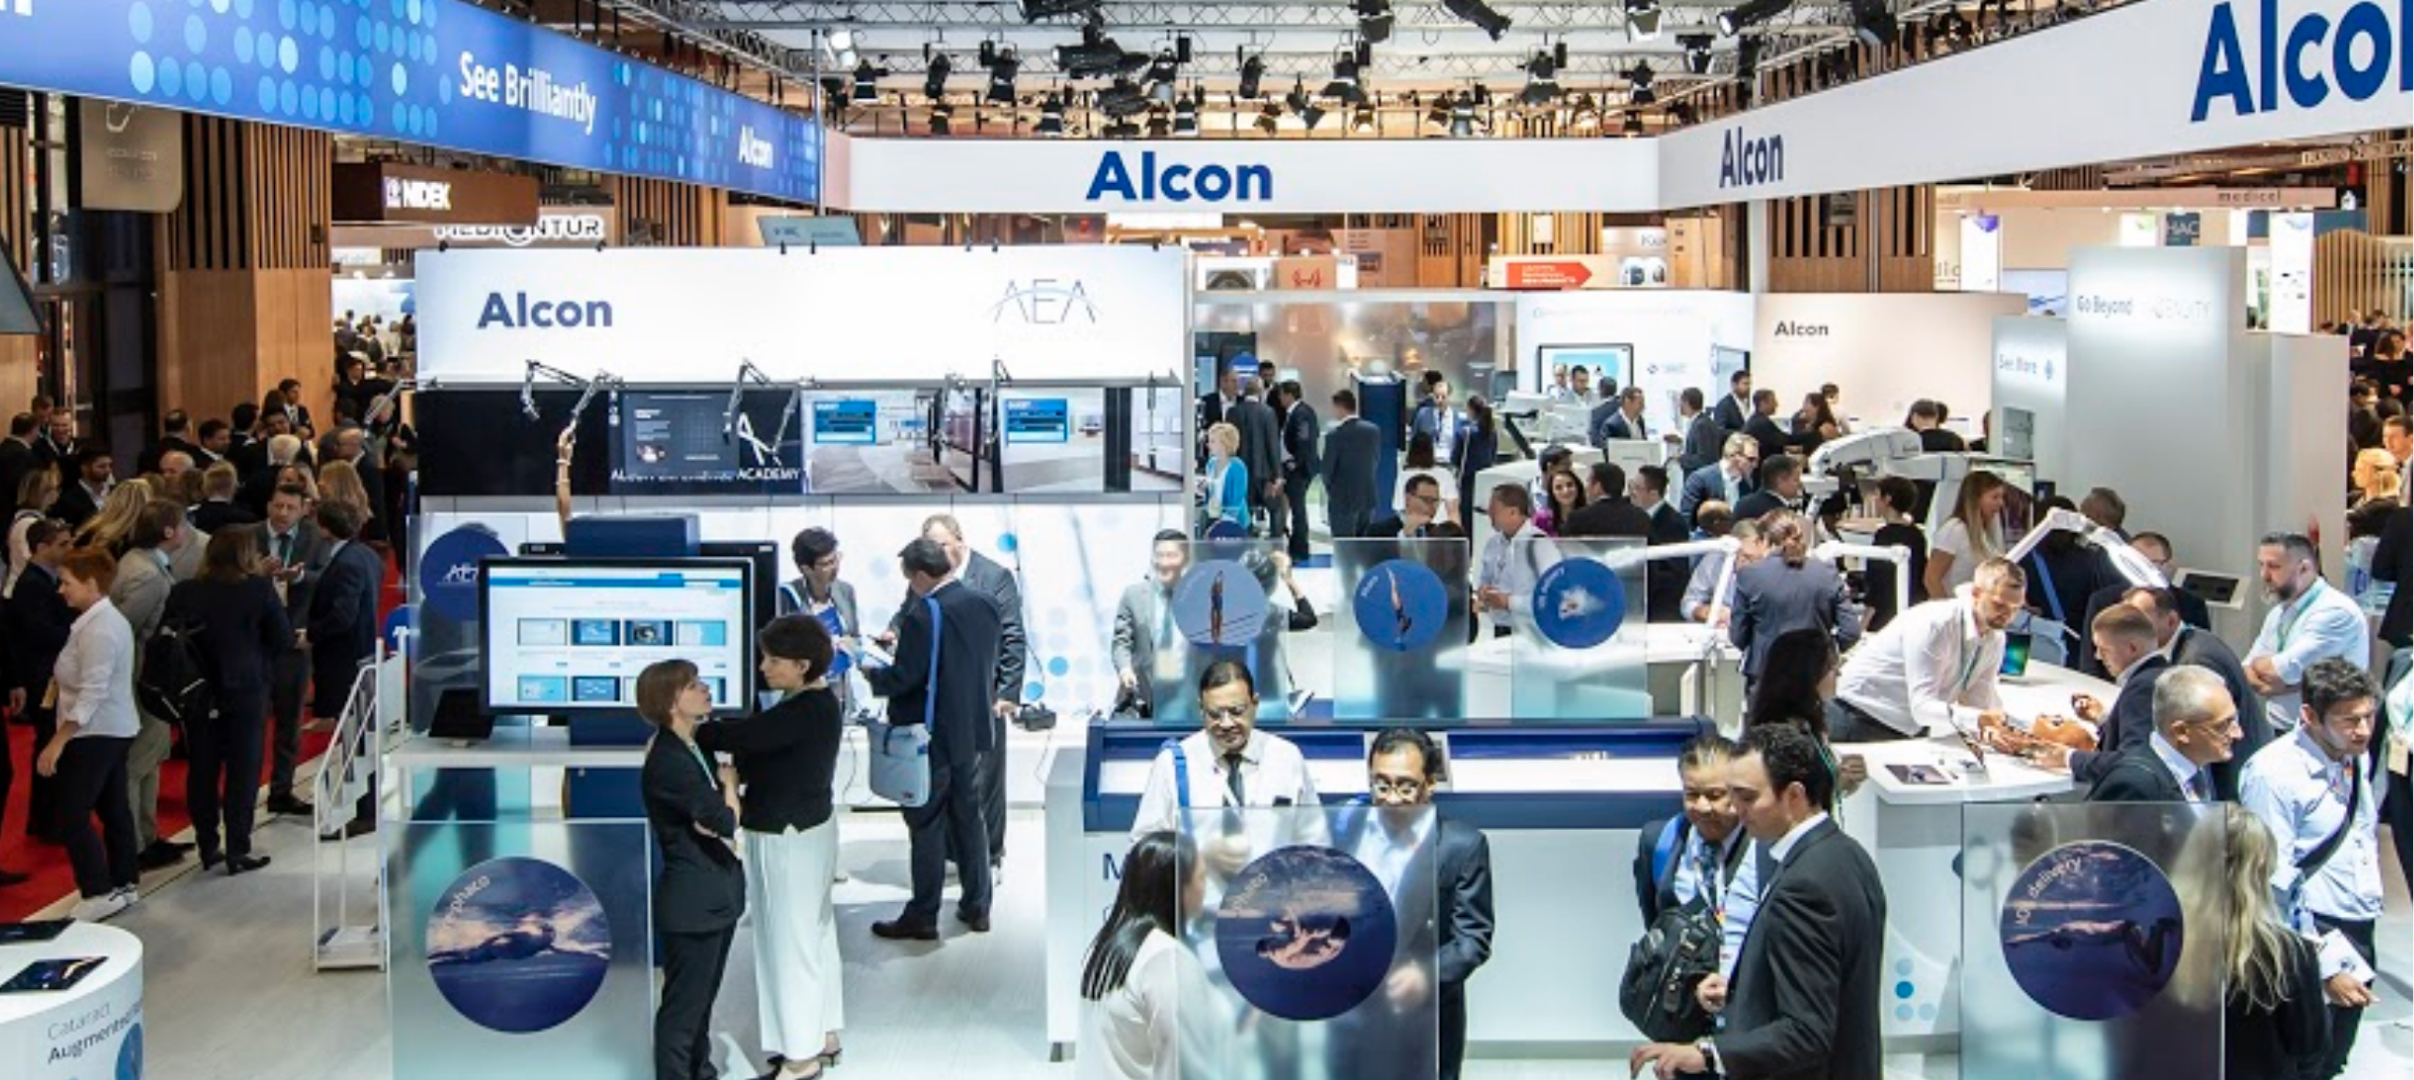 Alcon trade show with live events strategy by MCCGLC